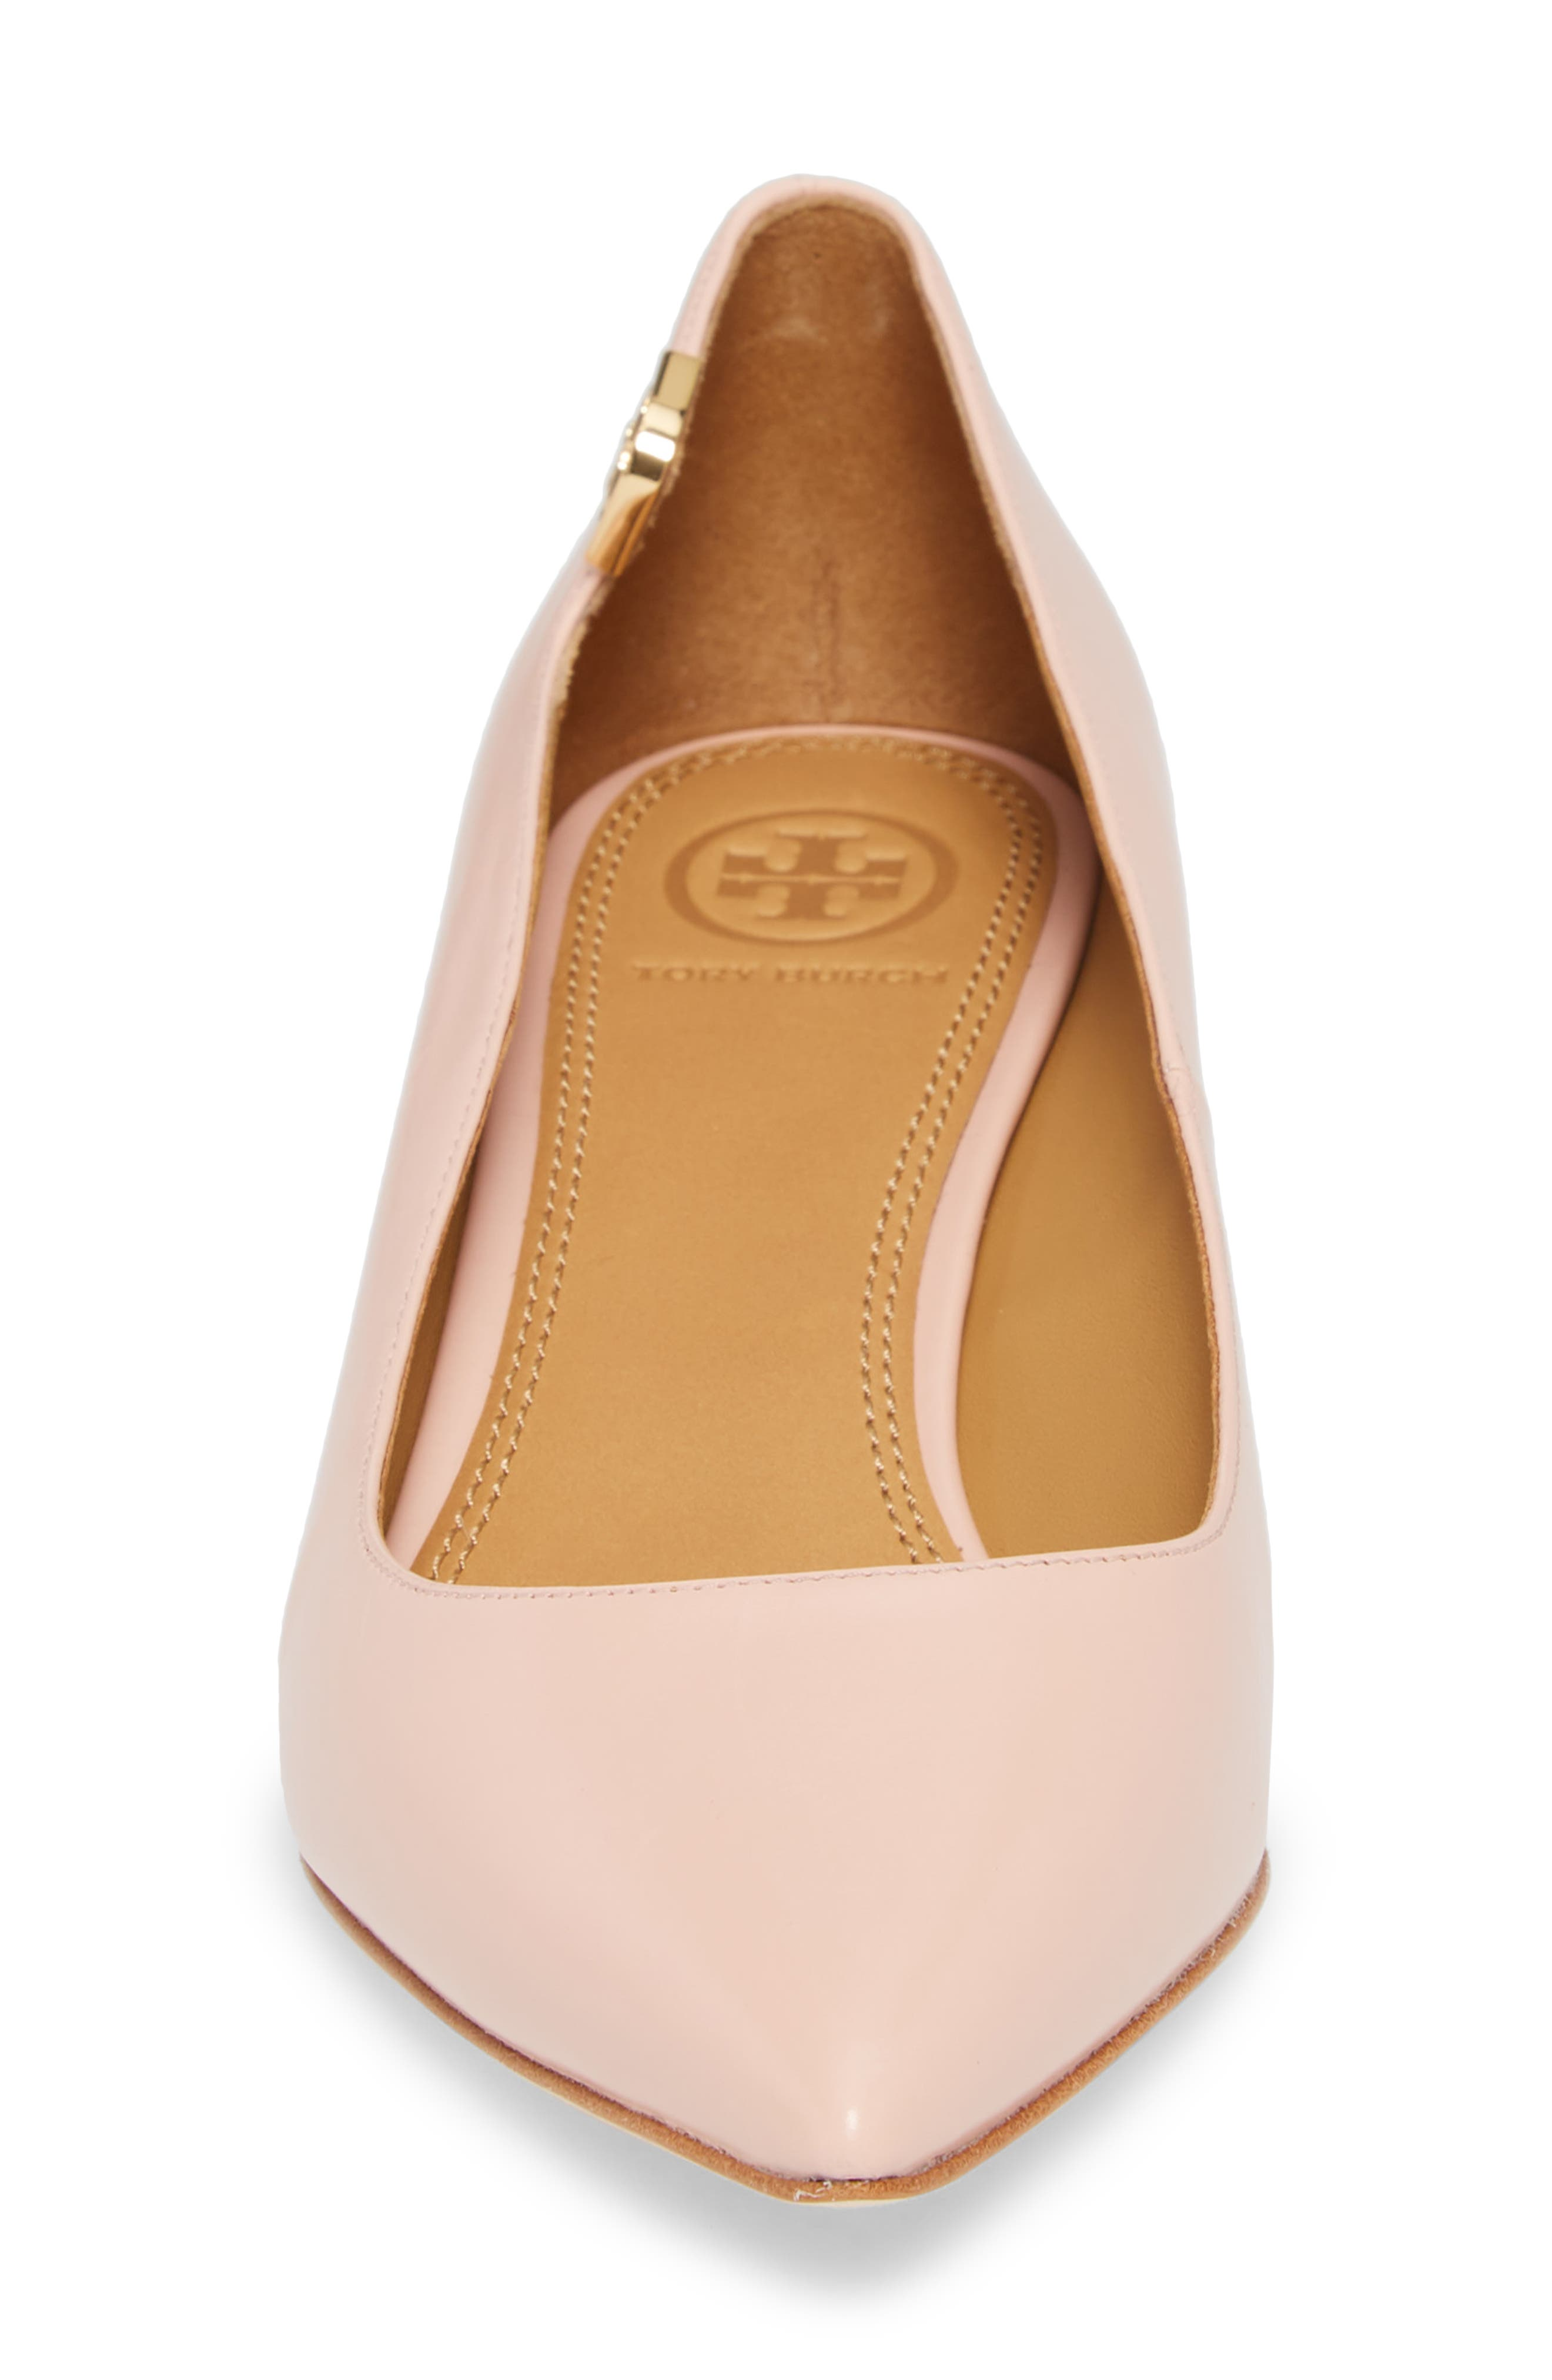 Elizabeth Pointy Toe Pump,                             Alternate thumbnail 4, color,                             Sea Shell Pink